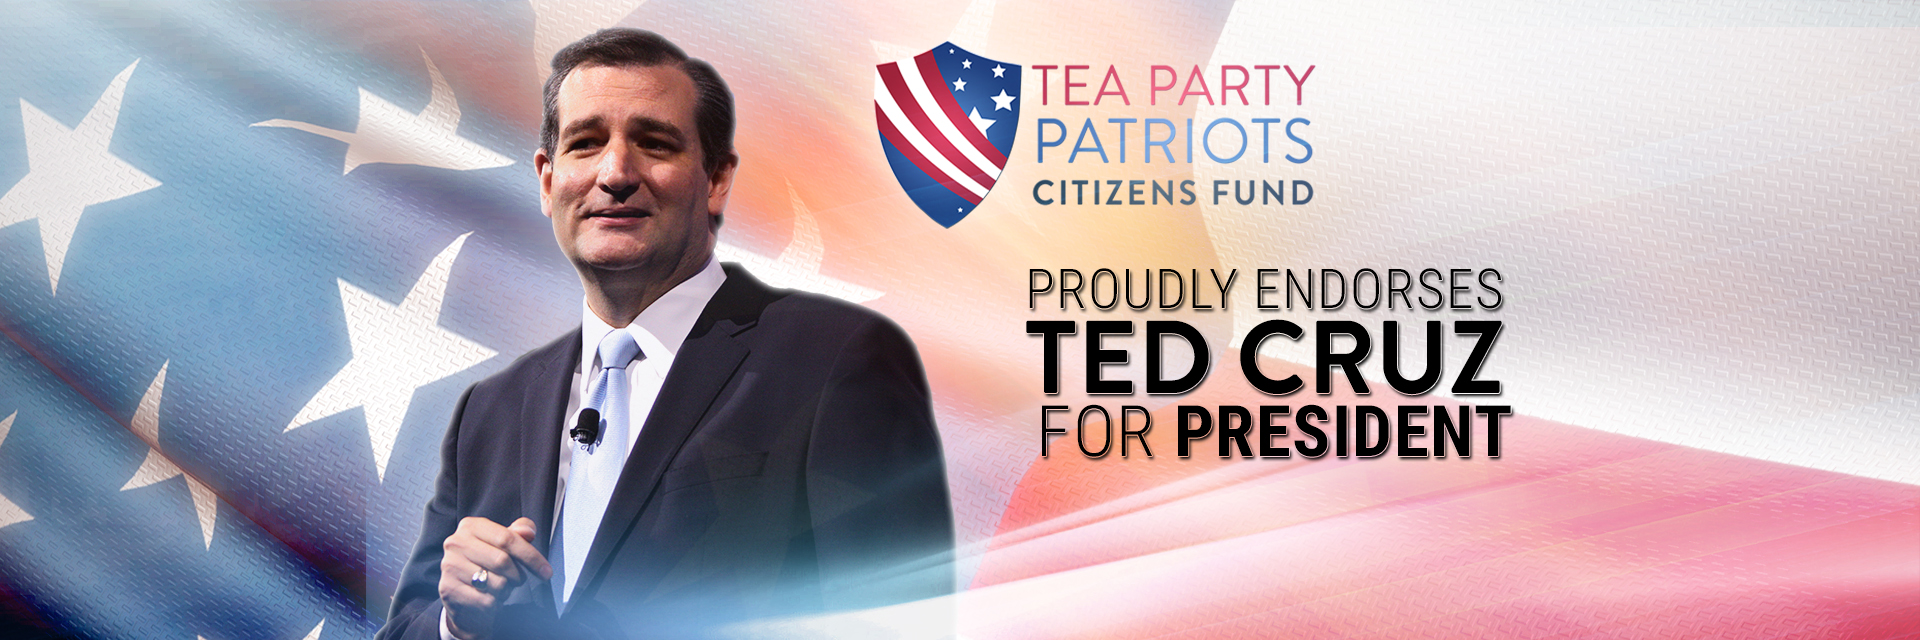 Tea Party Patriots Citizens Fund Endorsement  - Ted Cruz 2